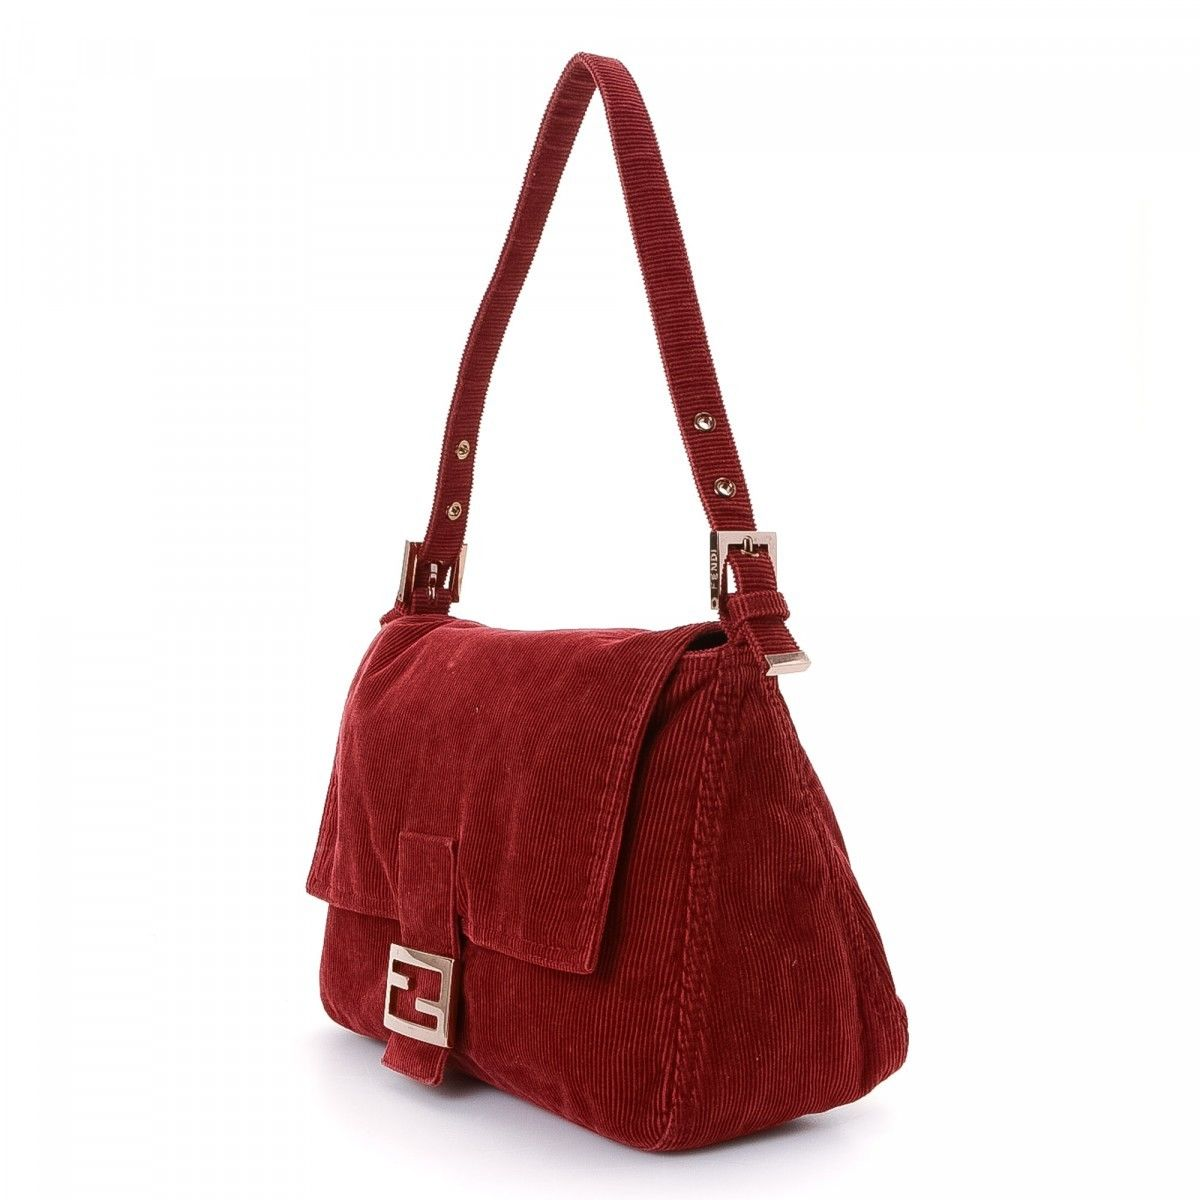 5b7f9f07db50 Fendi Mamma Baguette. LXRandCo guarantees the authenticity of this vintage  Fendi Mamma Baguette shoulder bag. Crafted in corduroy ...